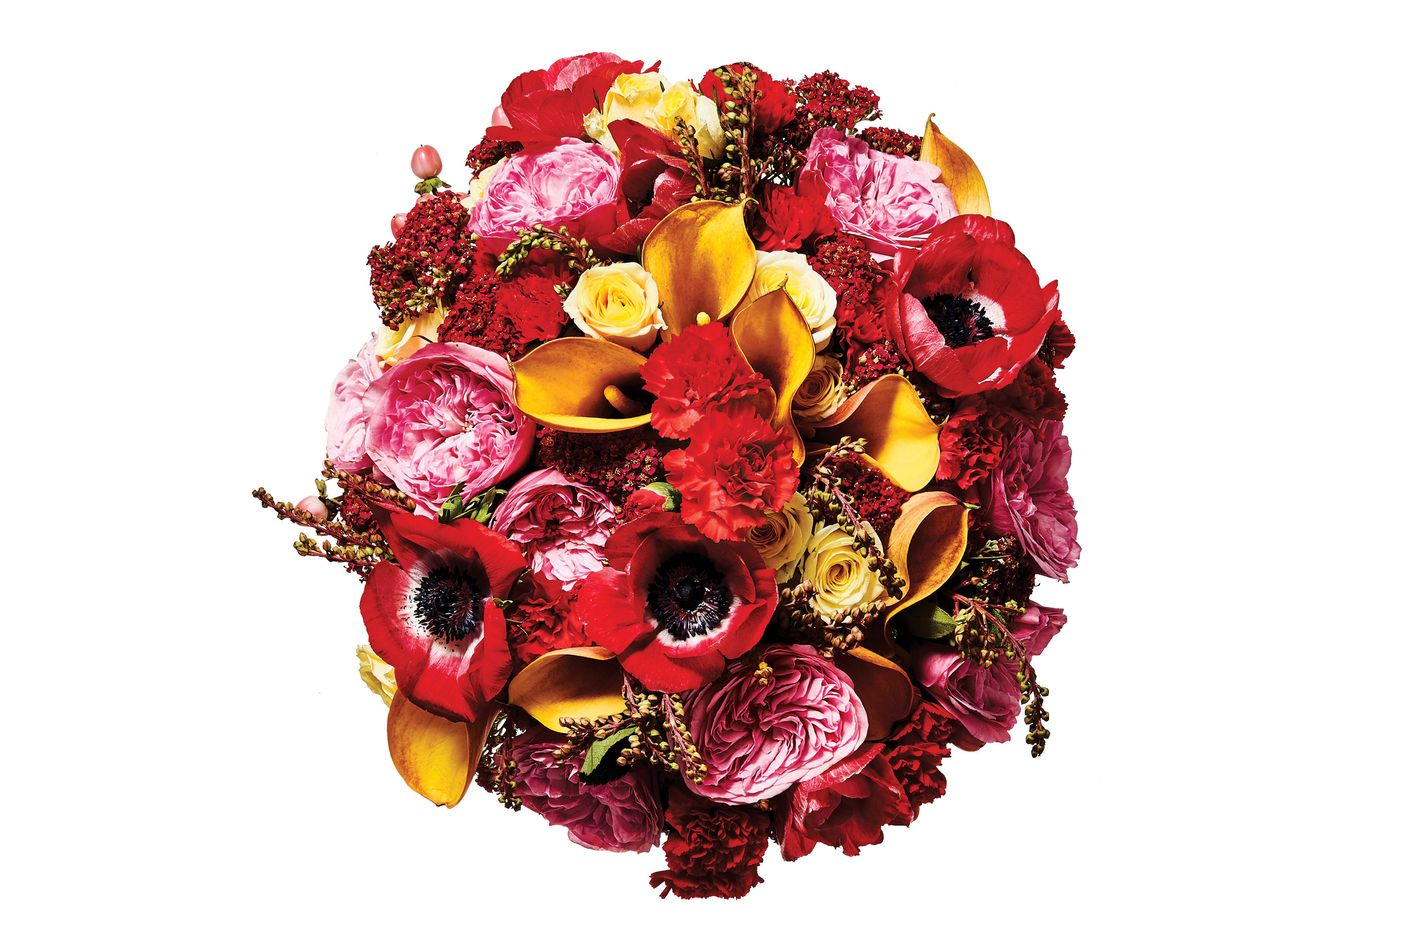 Anemone, yarrow, dianthus, andromeda, garden rose, spray rose, mango calla lily, and hypericum